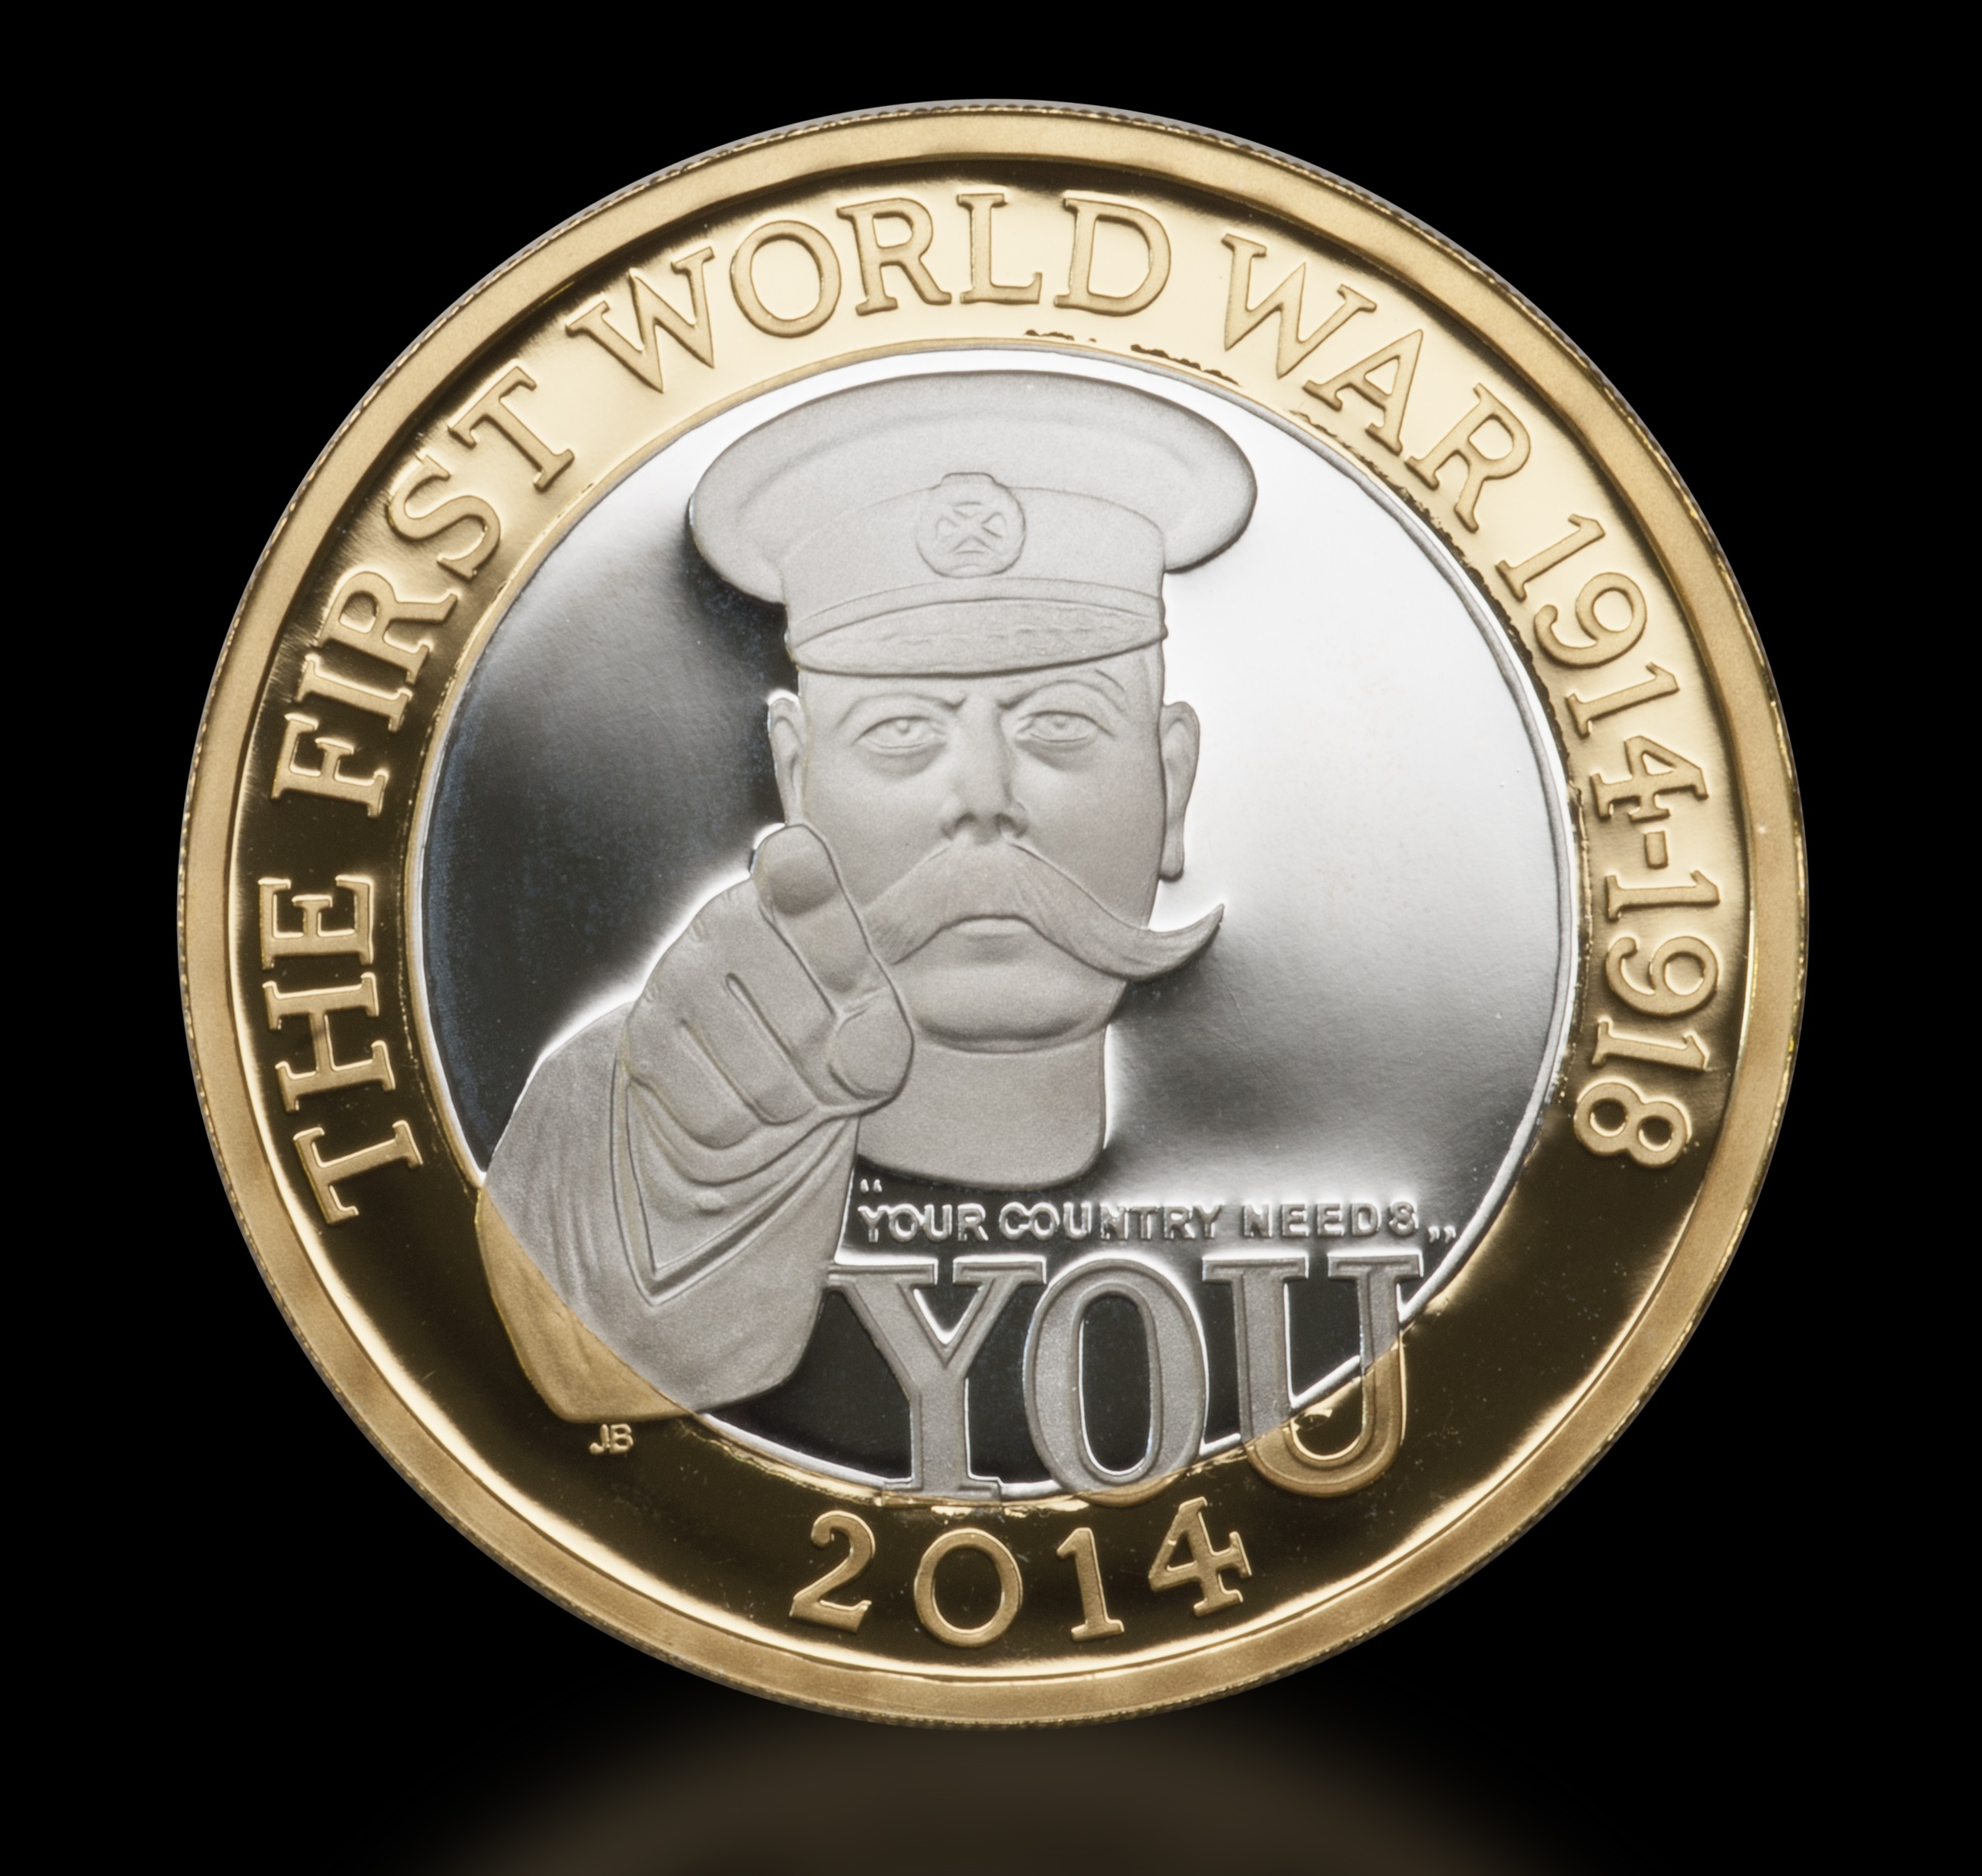 2 kitchener front on cropped - It's here! How you can own the 2014 First World War £2